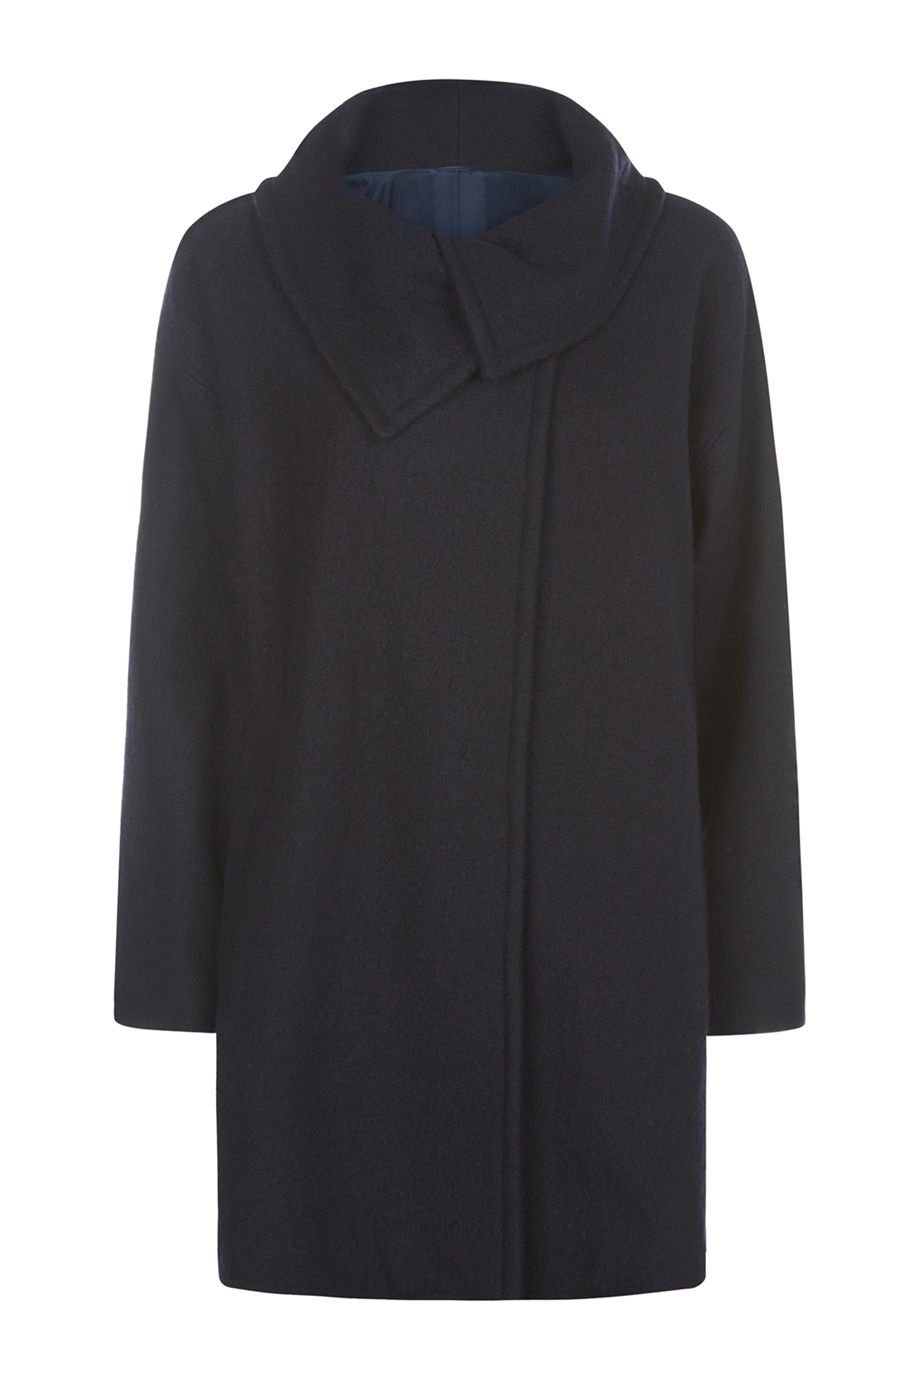 Fenn Wright Manson Emili Coat, Blue